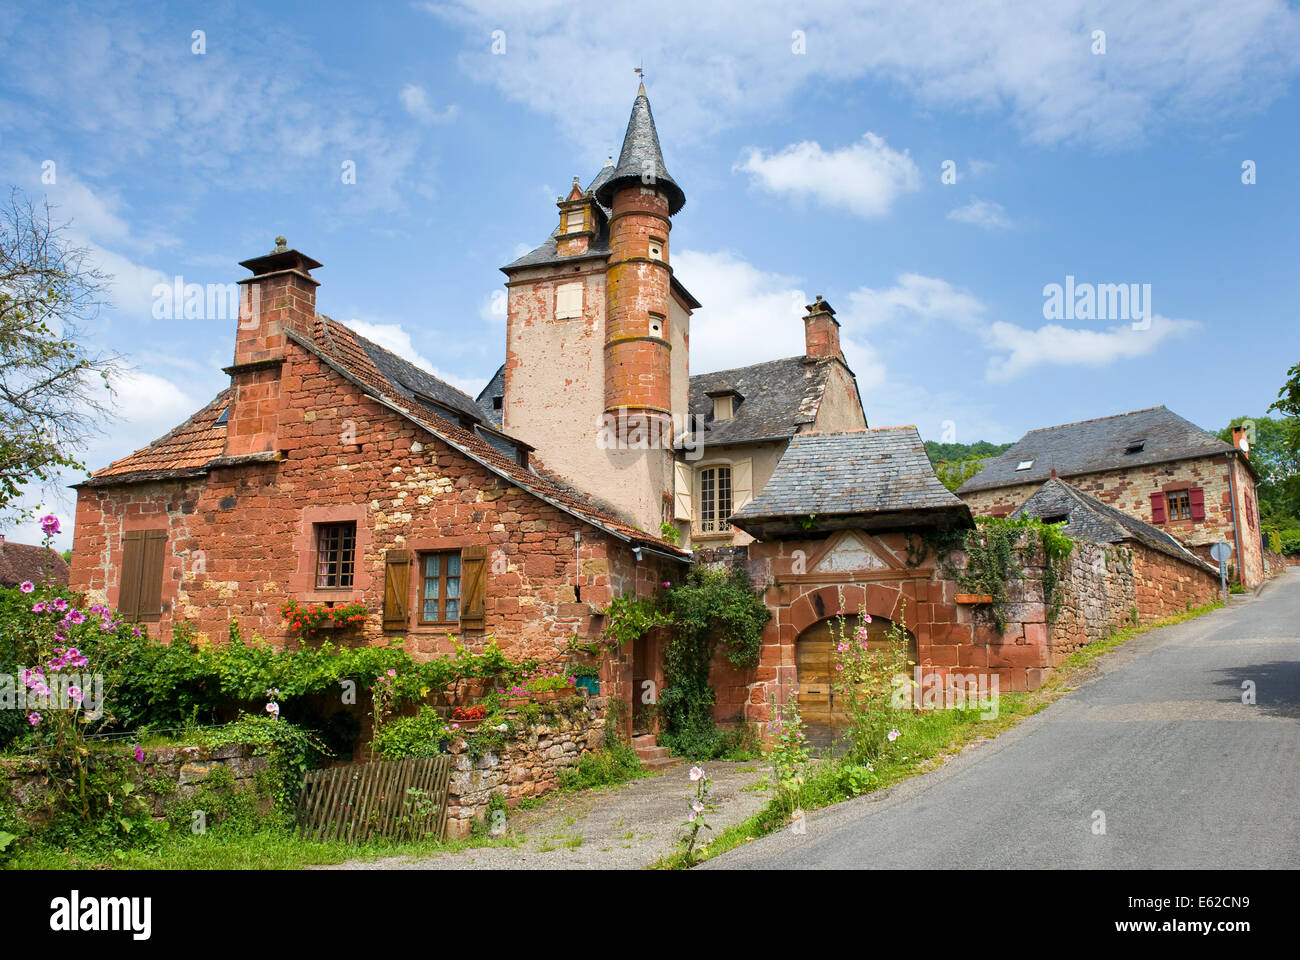 All the houses in the small picturesque city of Collonges la Rouge in France are built with red bricks - Stock Image